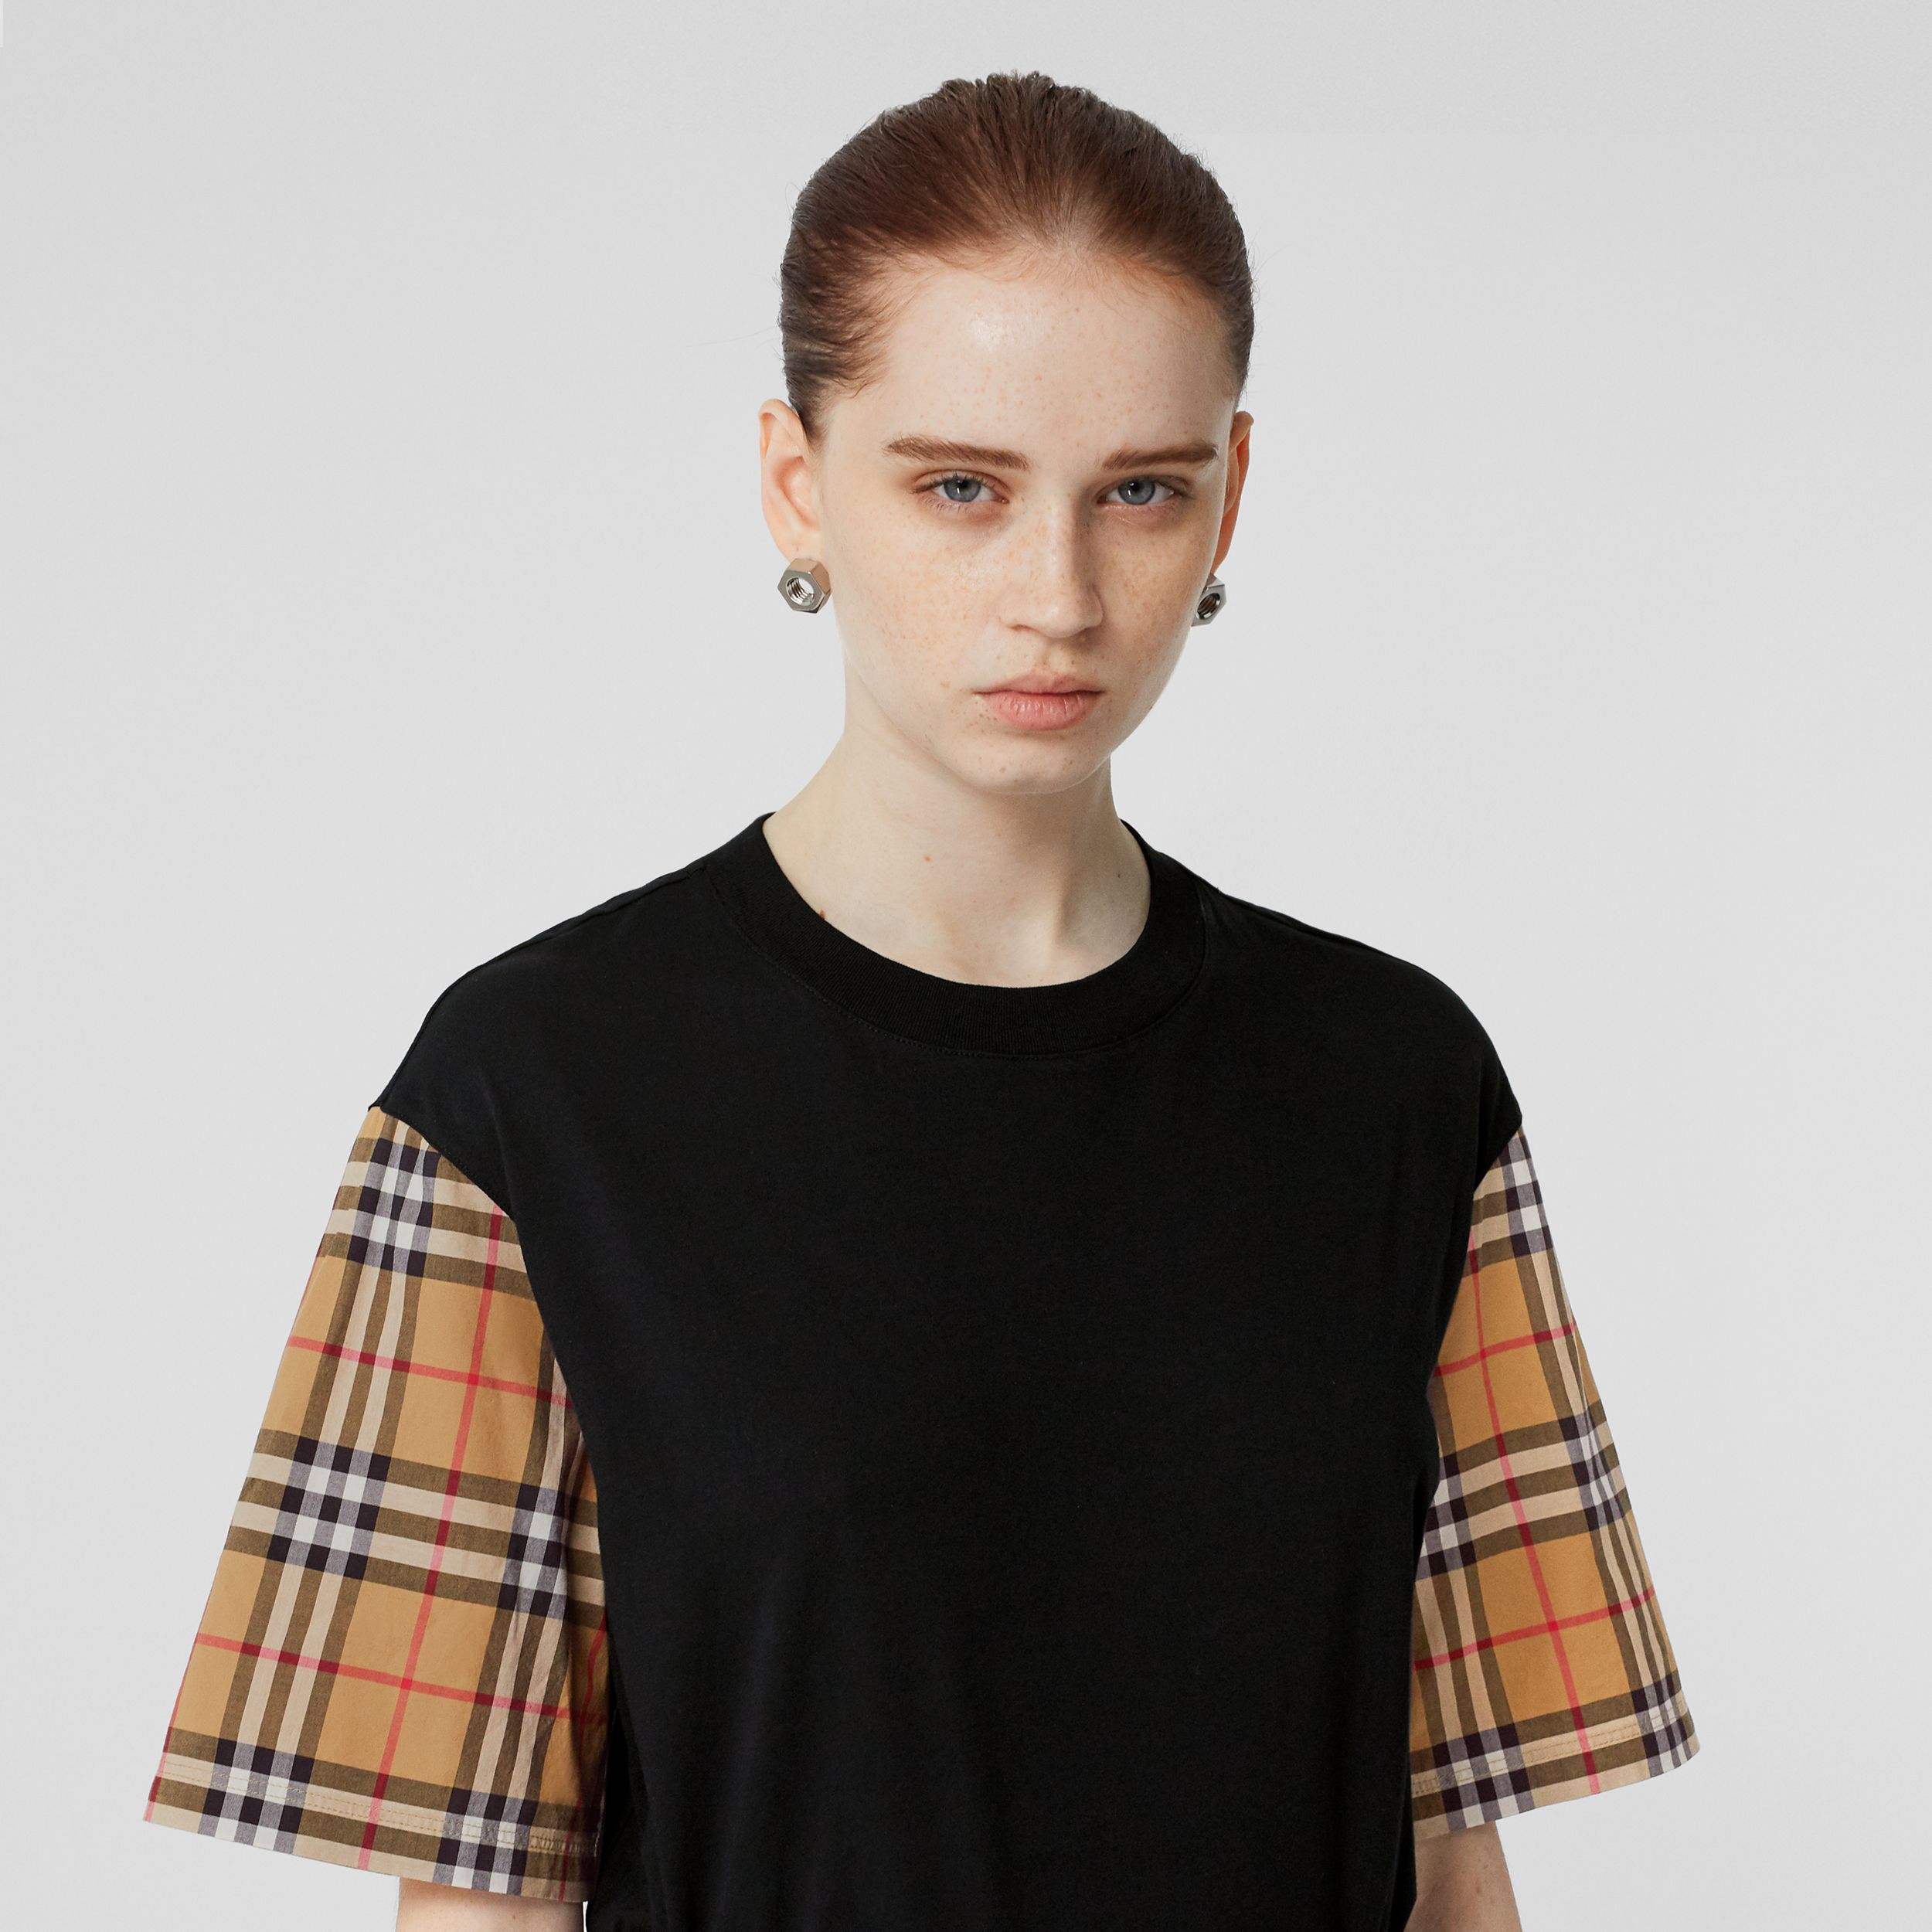 Vintage Check Detail Cotton T-shirt in Black - Women | Burberry Australia - 2